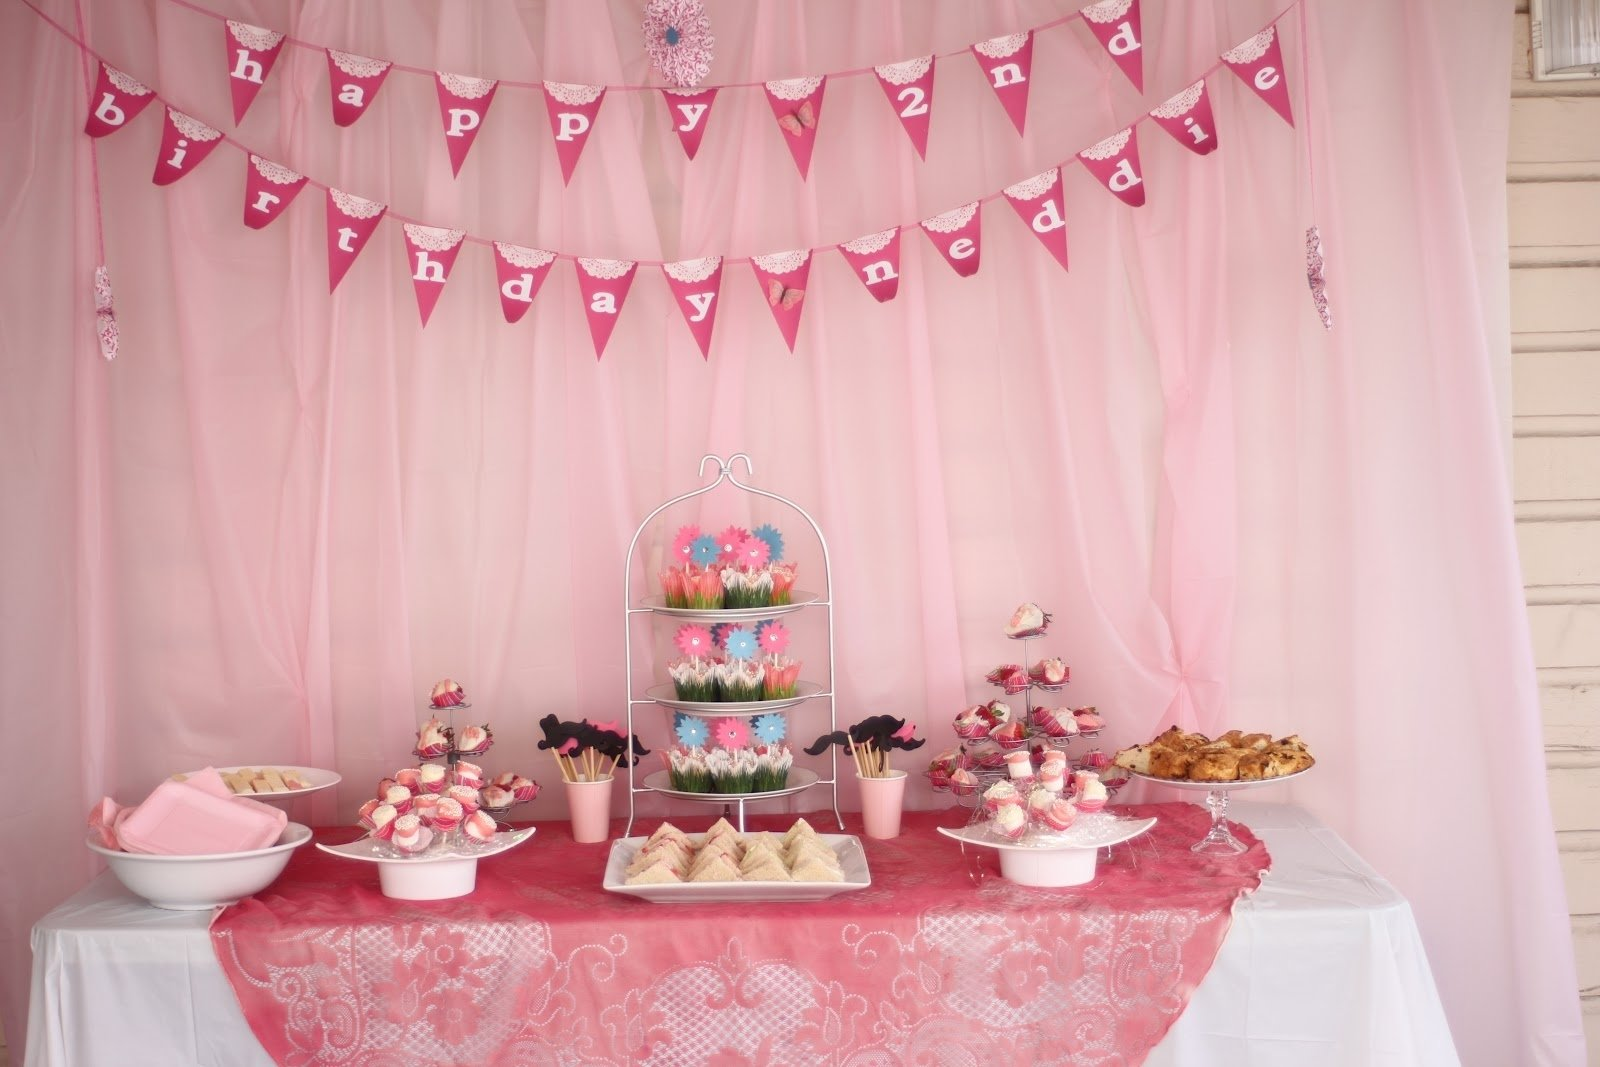 Ideas For 6 Year Old Birthday Party At Home Makeup